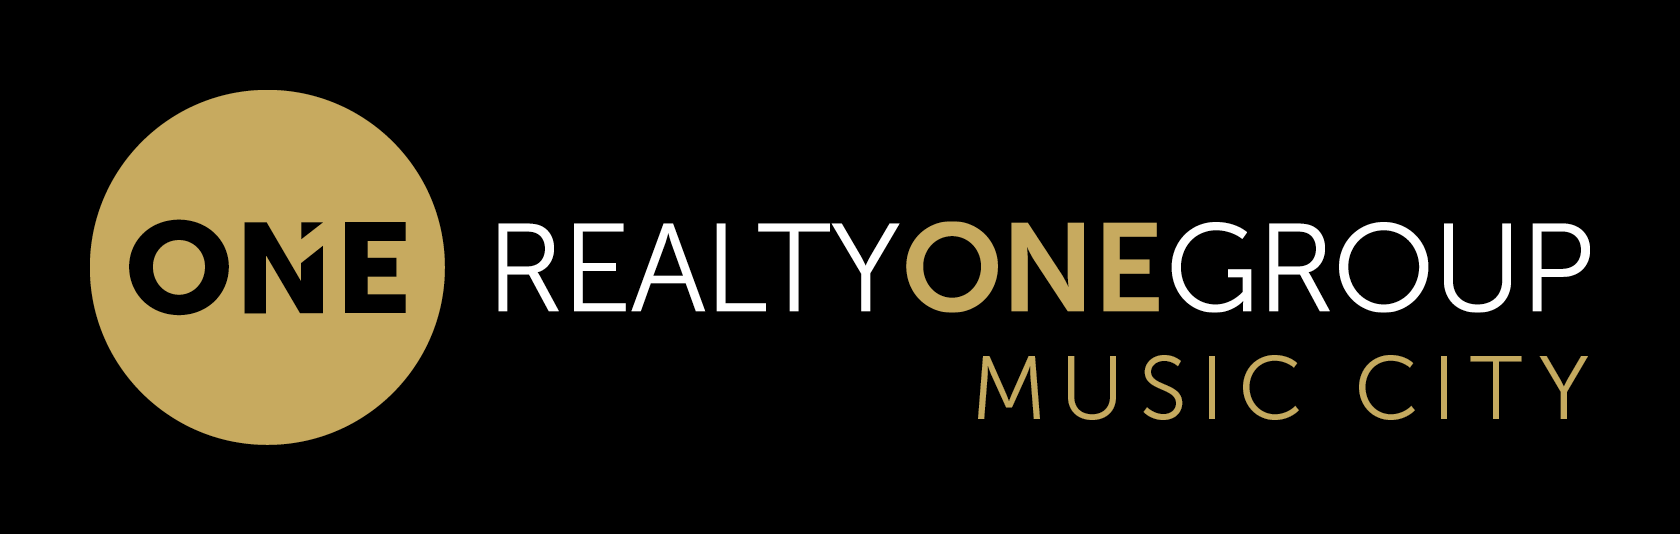 Realty One Group Music City logo